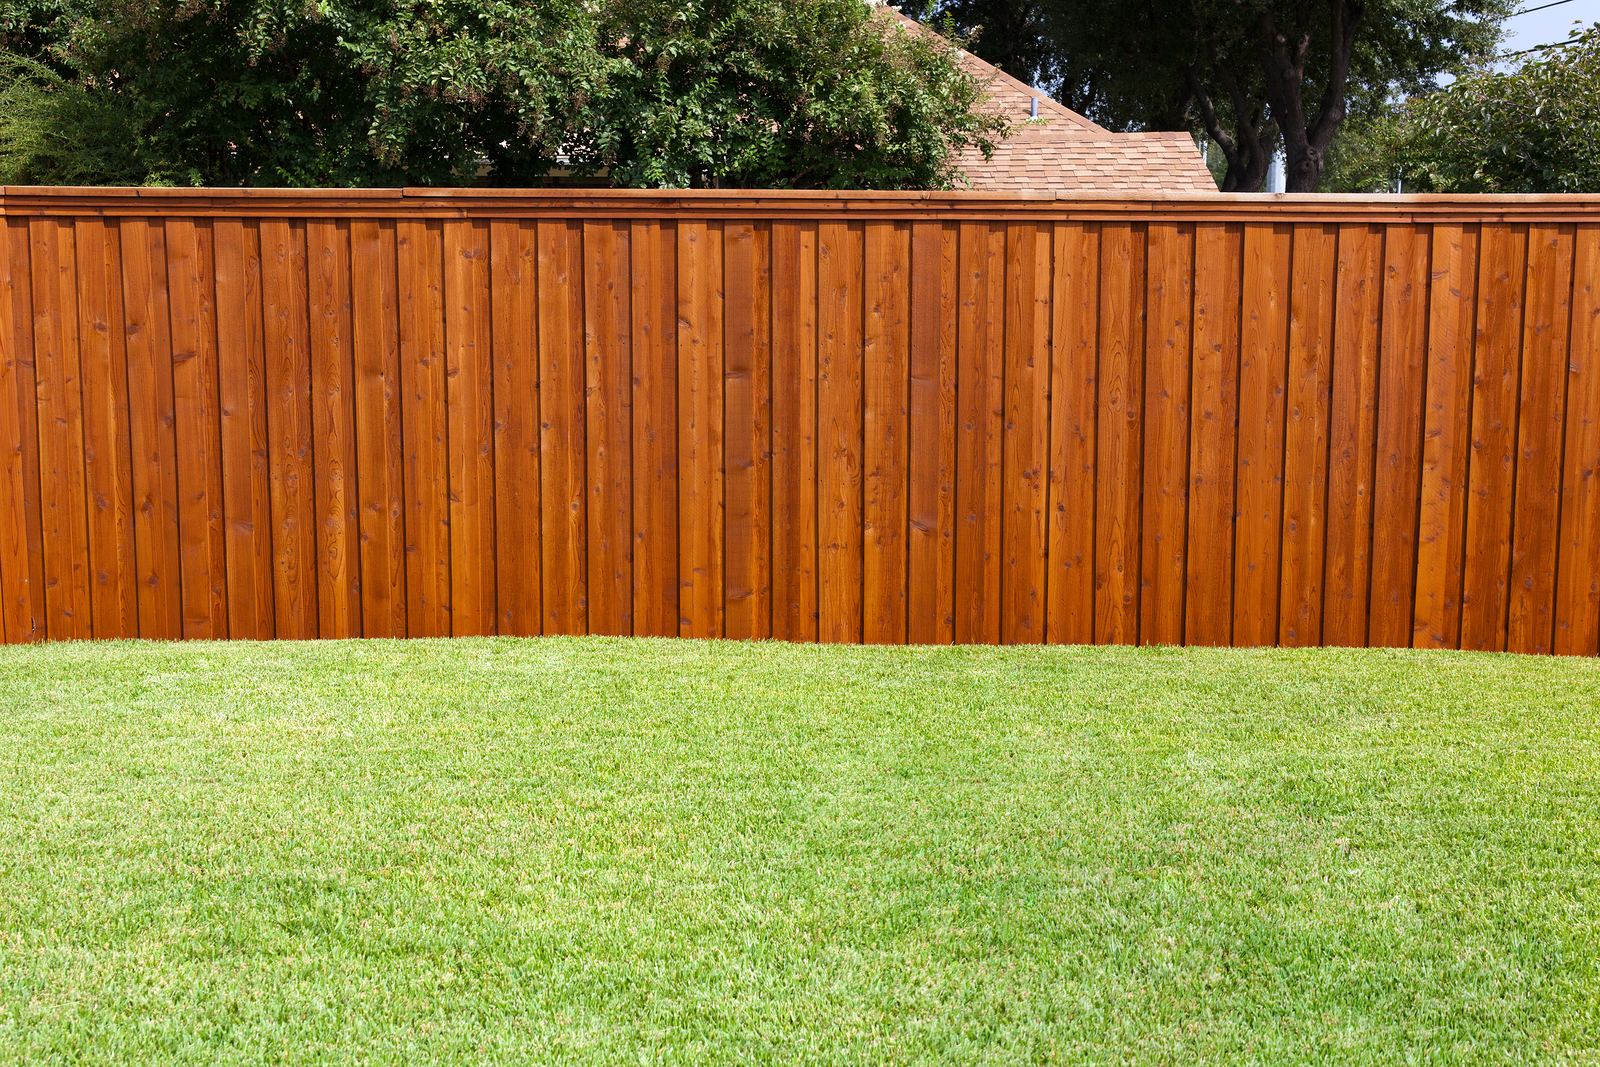 6 Reasons To Install A Fence Around Your Backyard Themocracy throughout Cost Of Backyard Fence